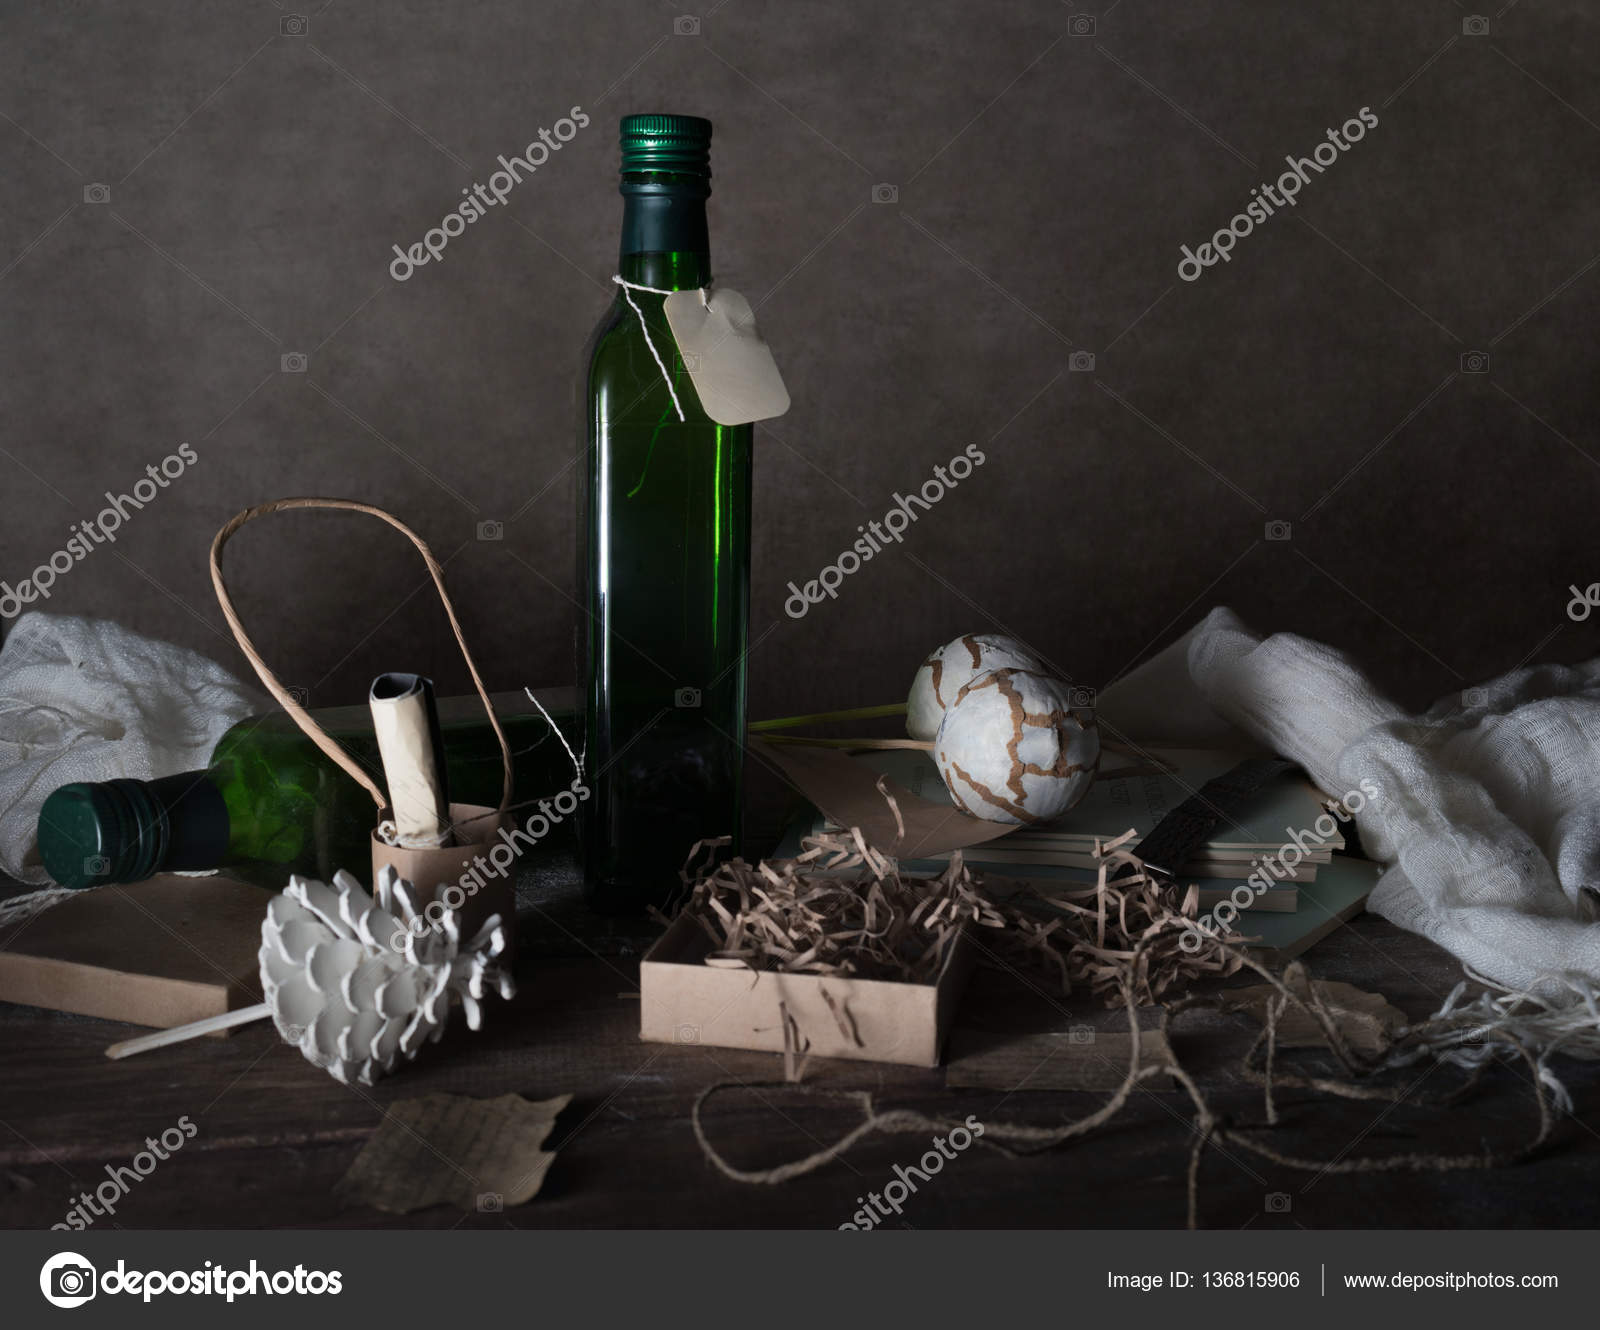 Still Life Vintage Bottle With A Label Boxes Scarf Decor On Wooden Table Dark Background Photo By UGCannel